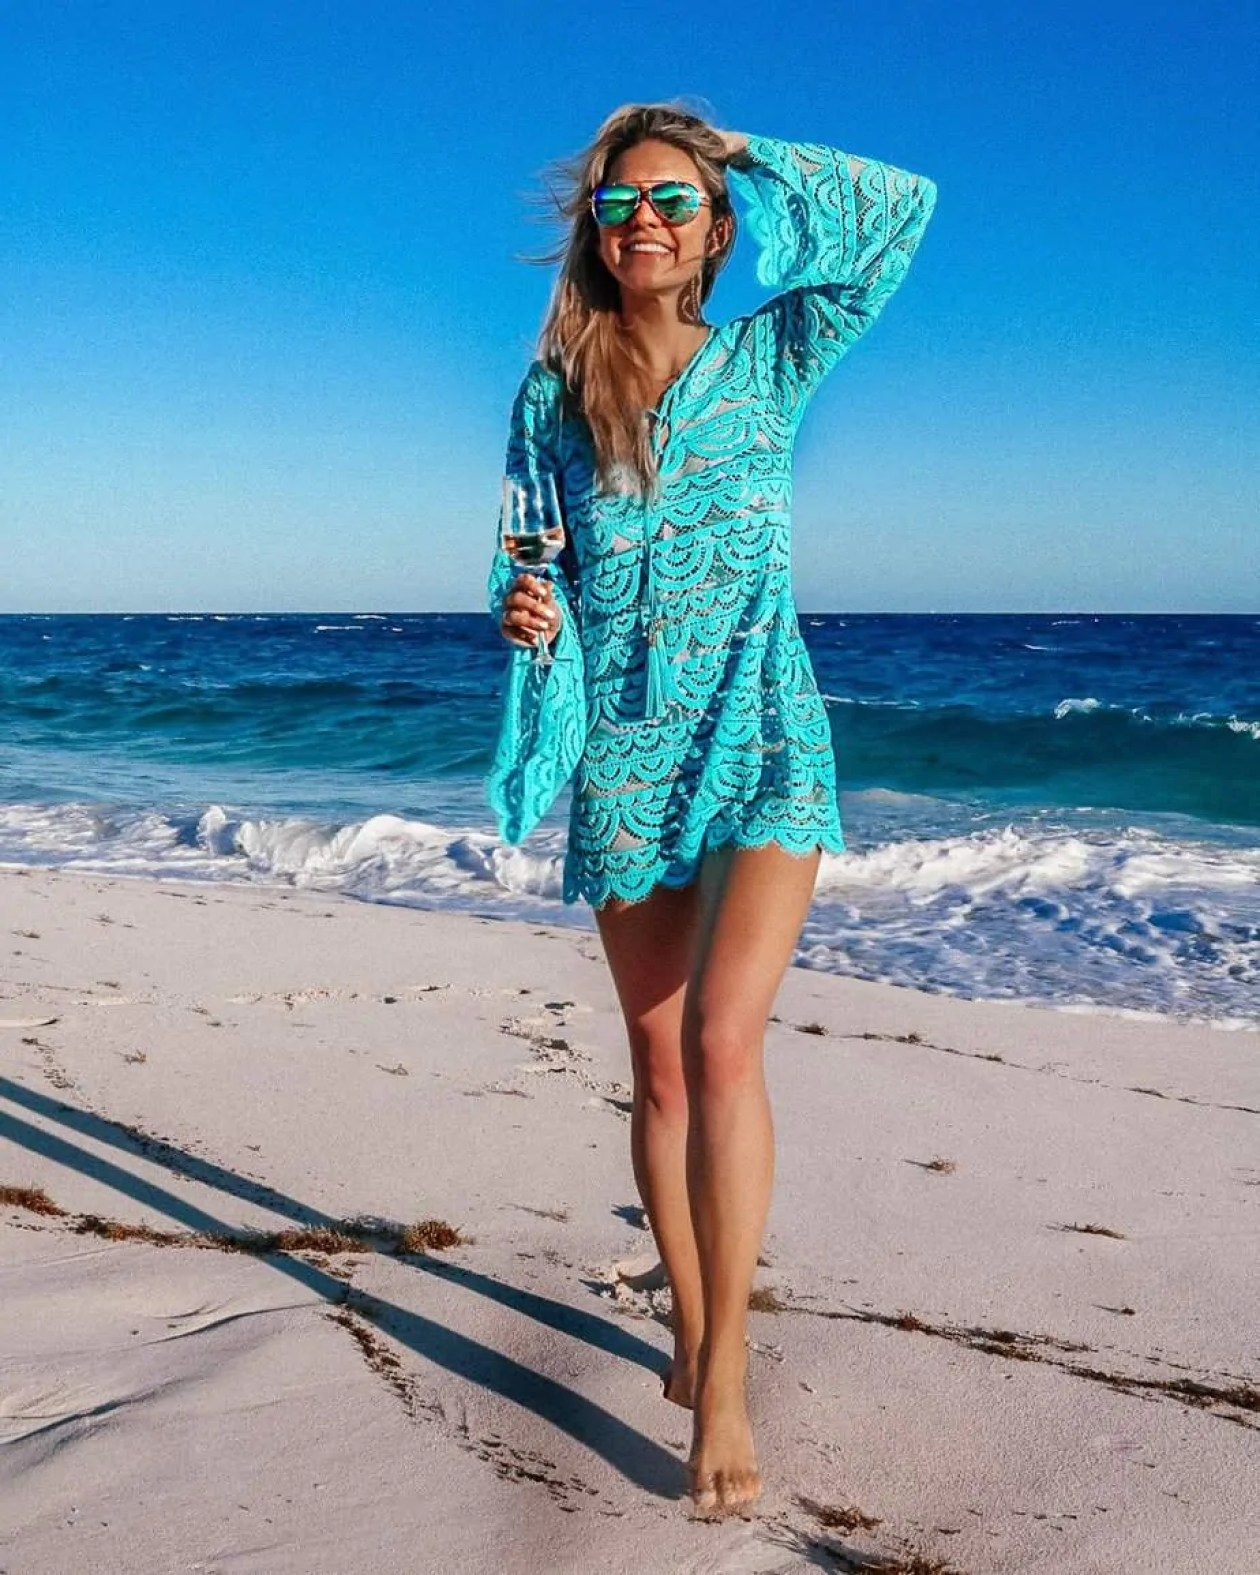 Beach vacation outfit